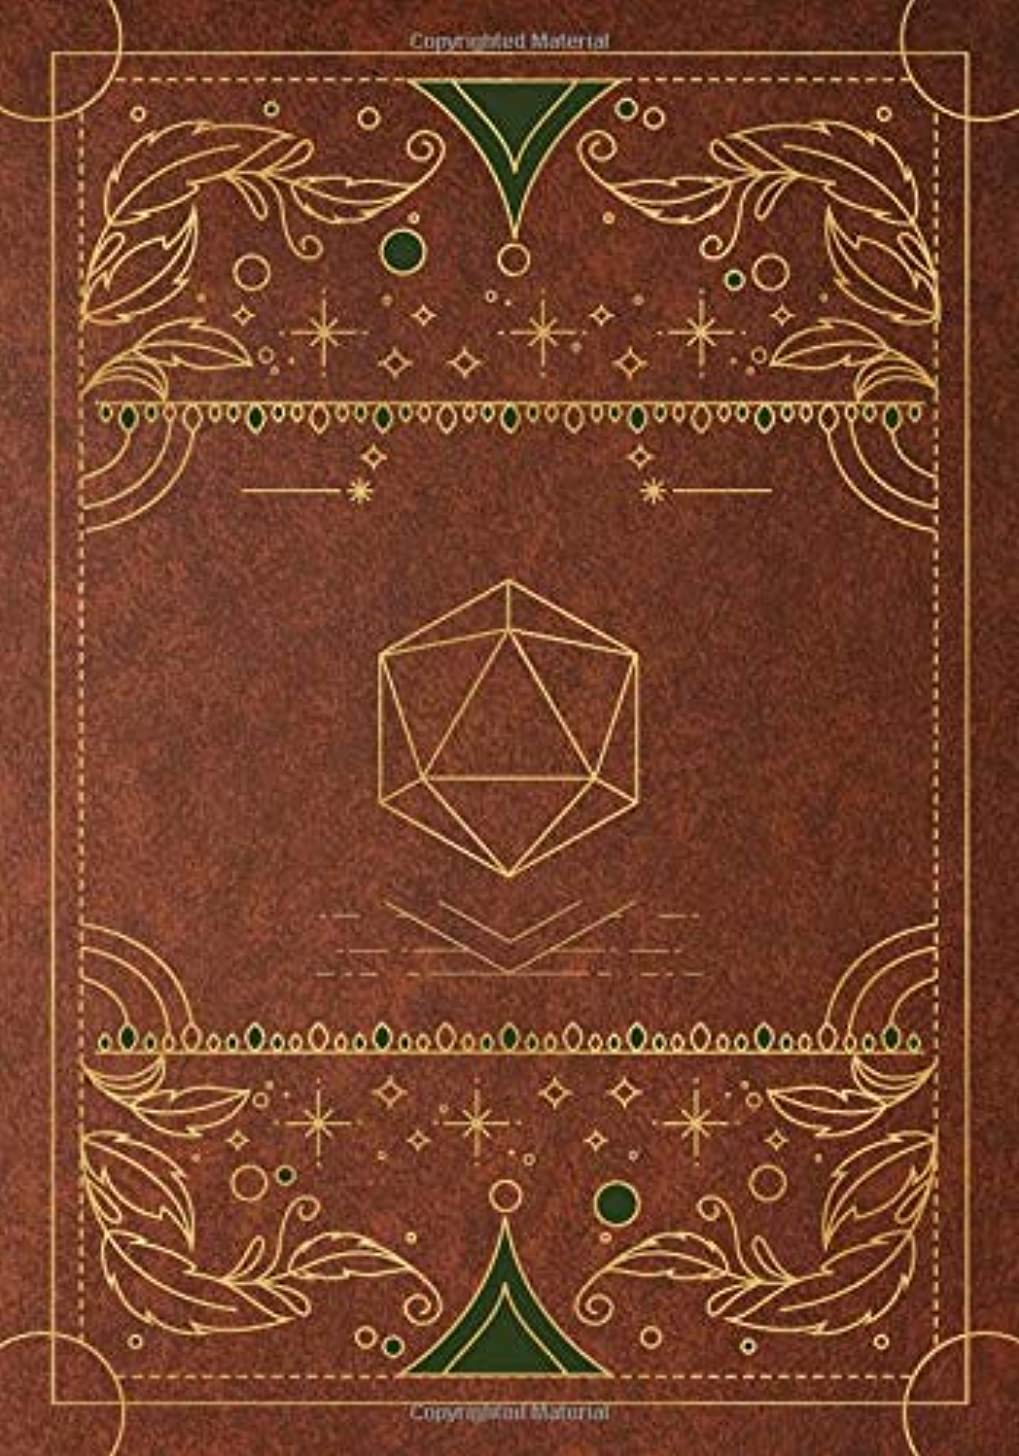 RPG journal: Mixed paper: Ruled, graph, hex: For role playing gamers: Notes, tracking, mapping, terrain plans: Vintage brown dice deco cover design